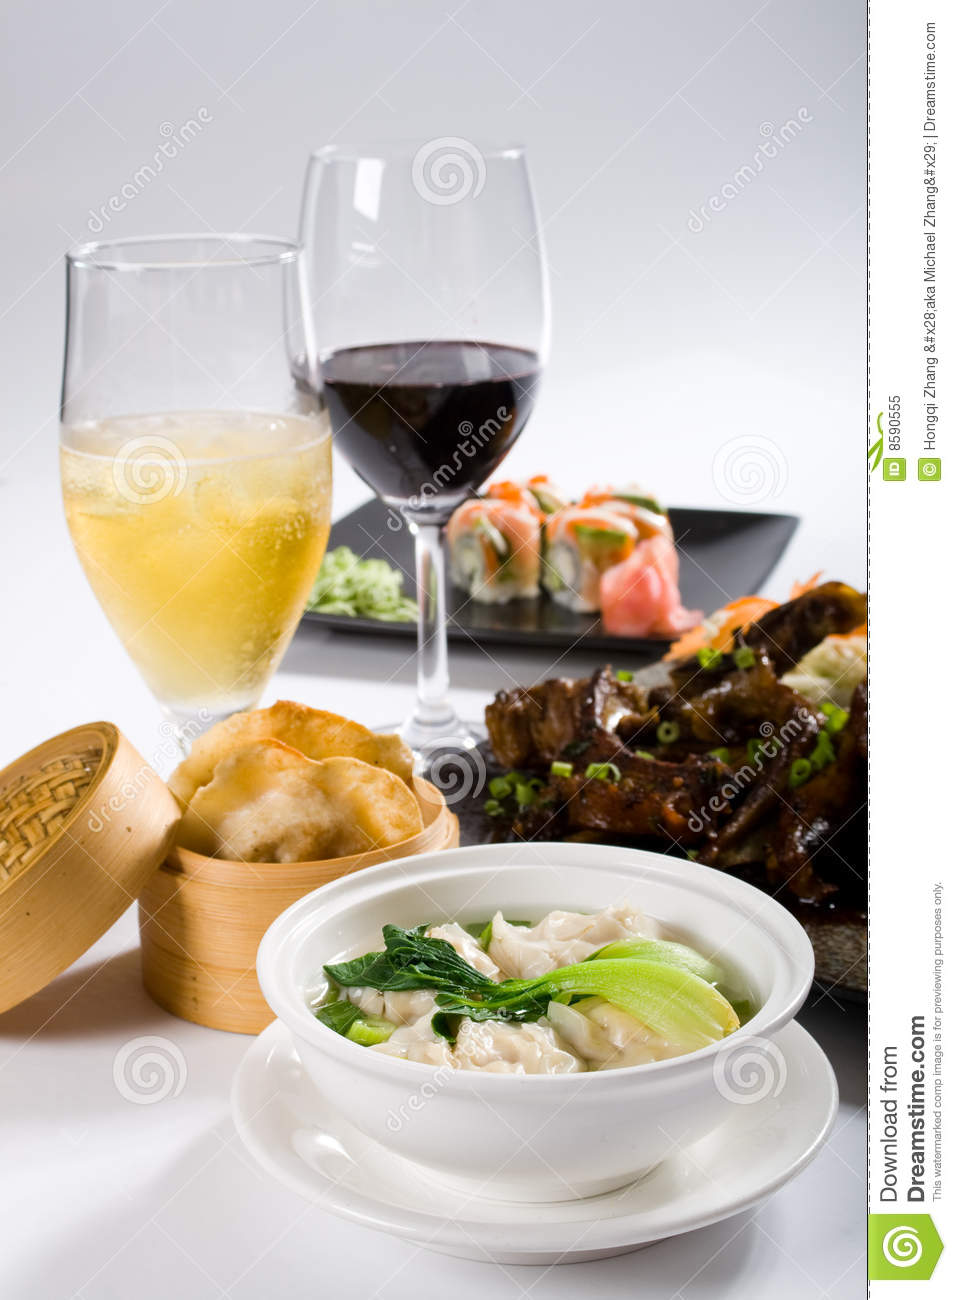 Chinese cuisine royalty free stock photo image 8590555 for Ajk chinese cuisine